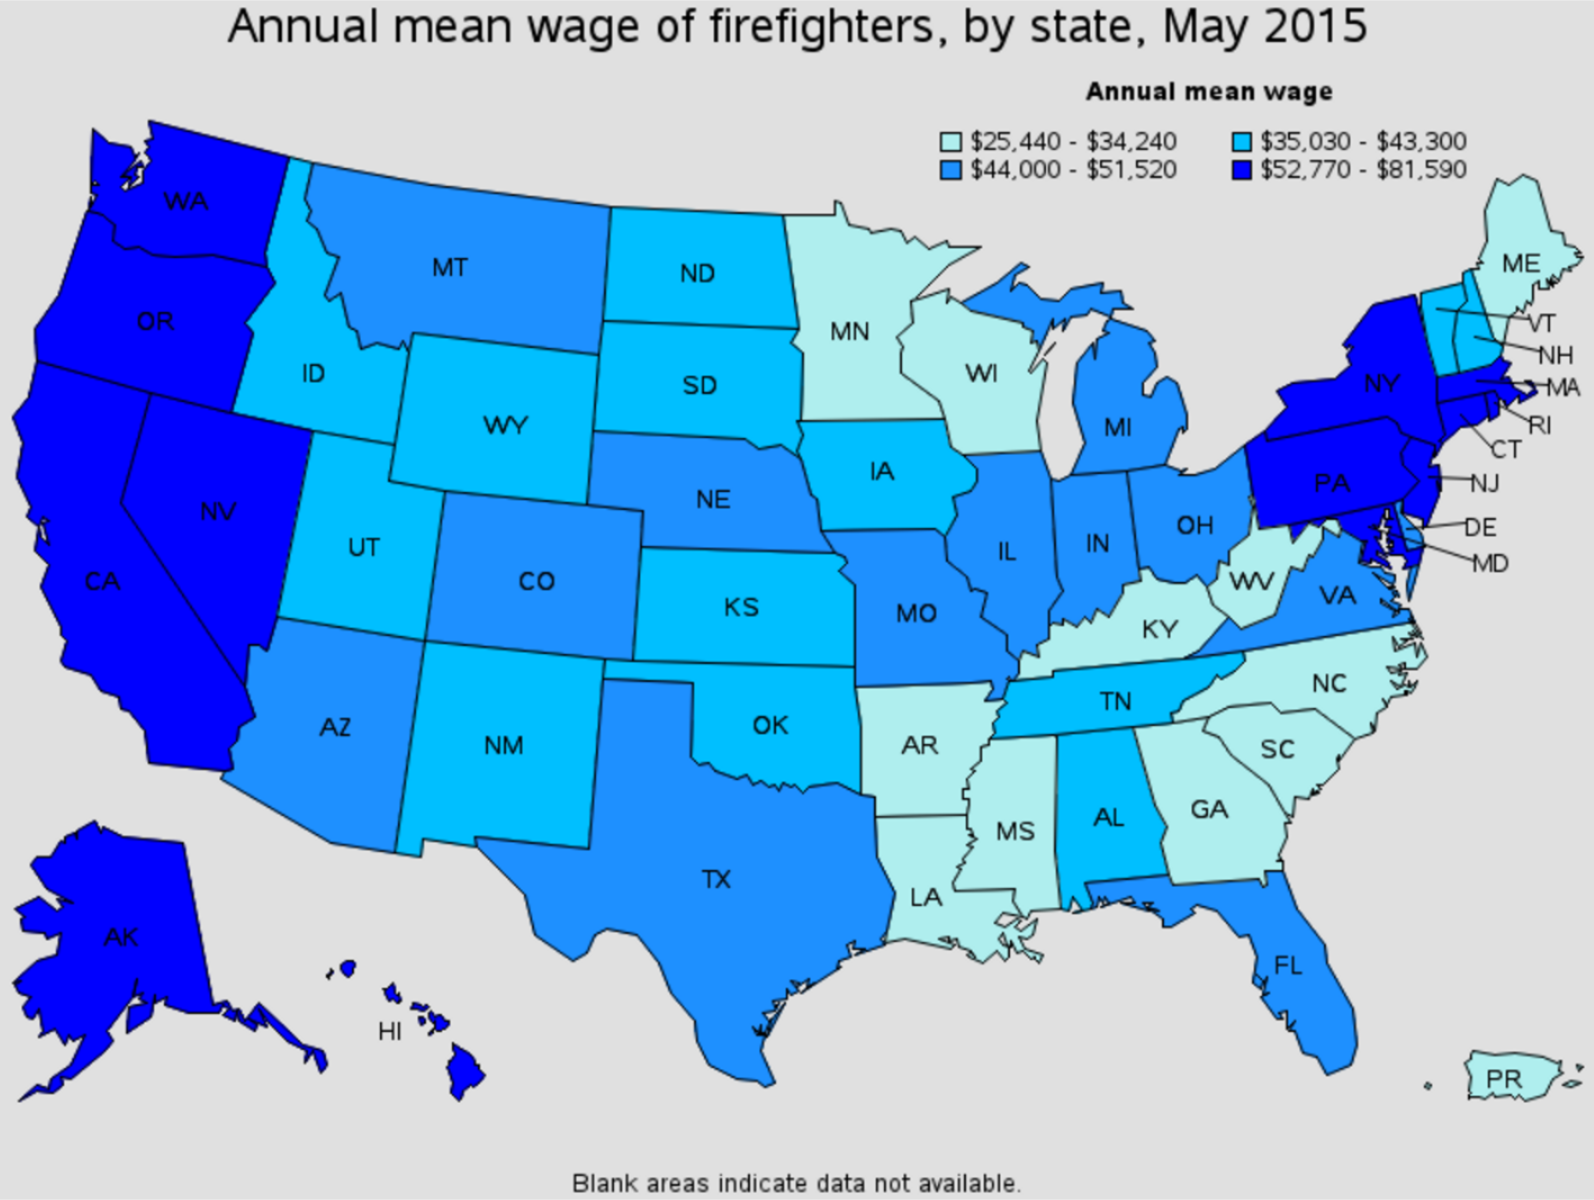 firefighter average salary by state El Monte California